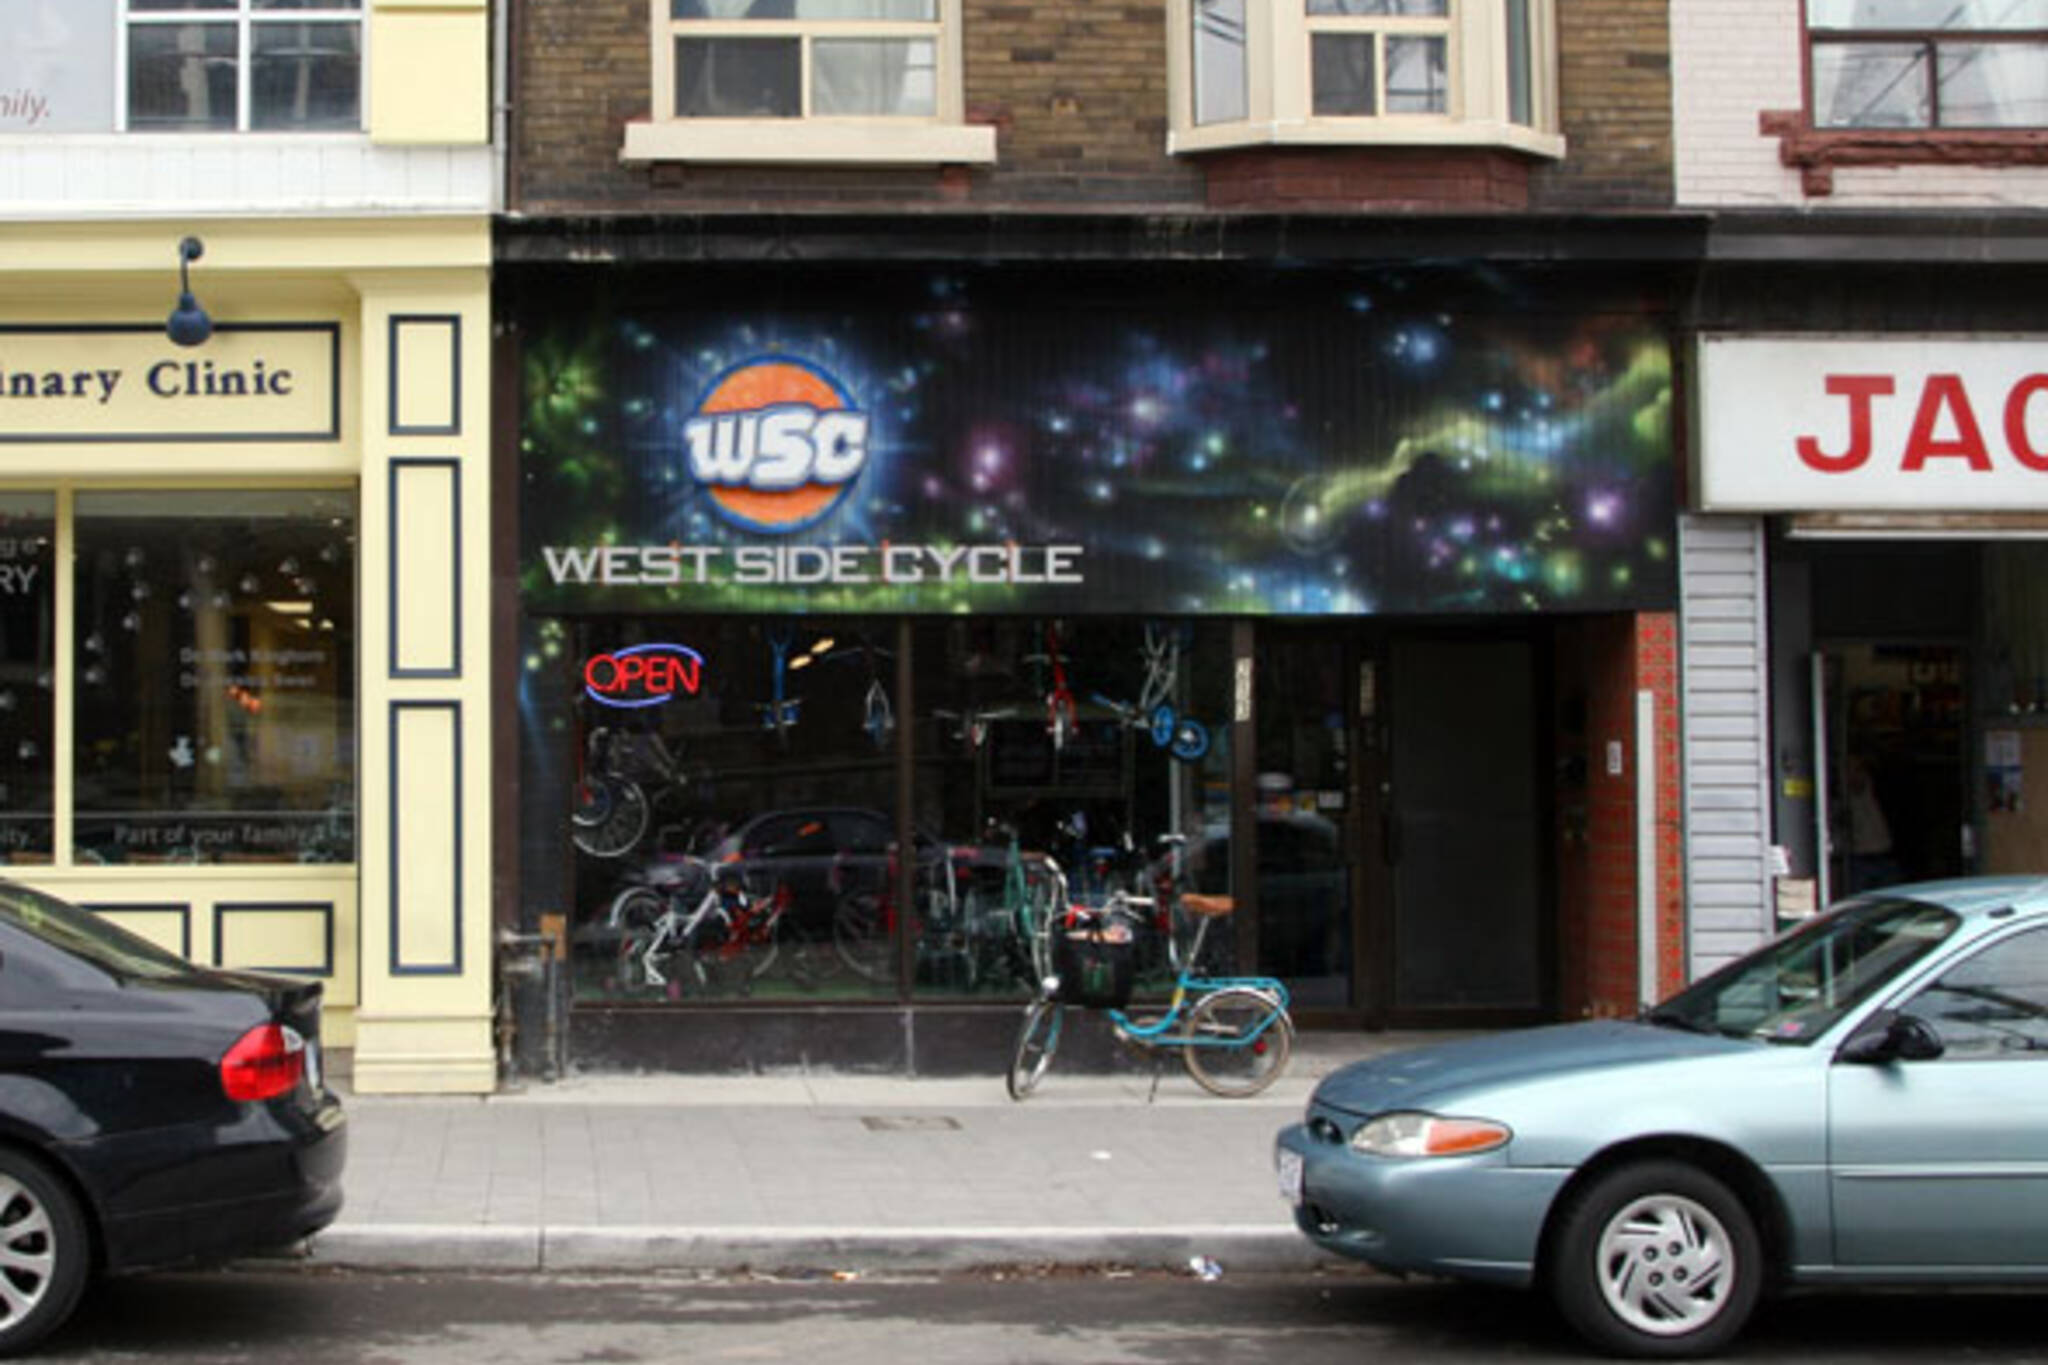 West Side Cycle